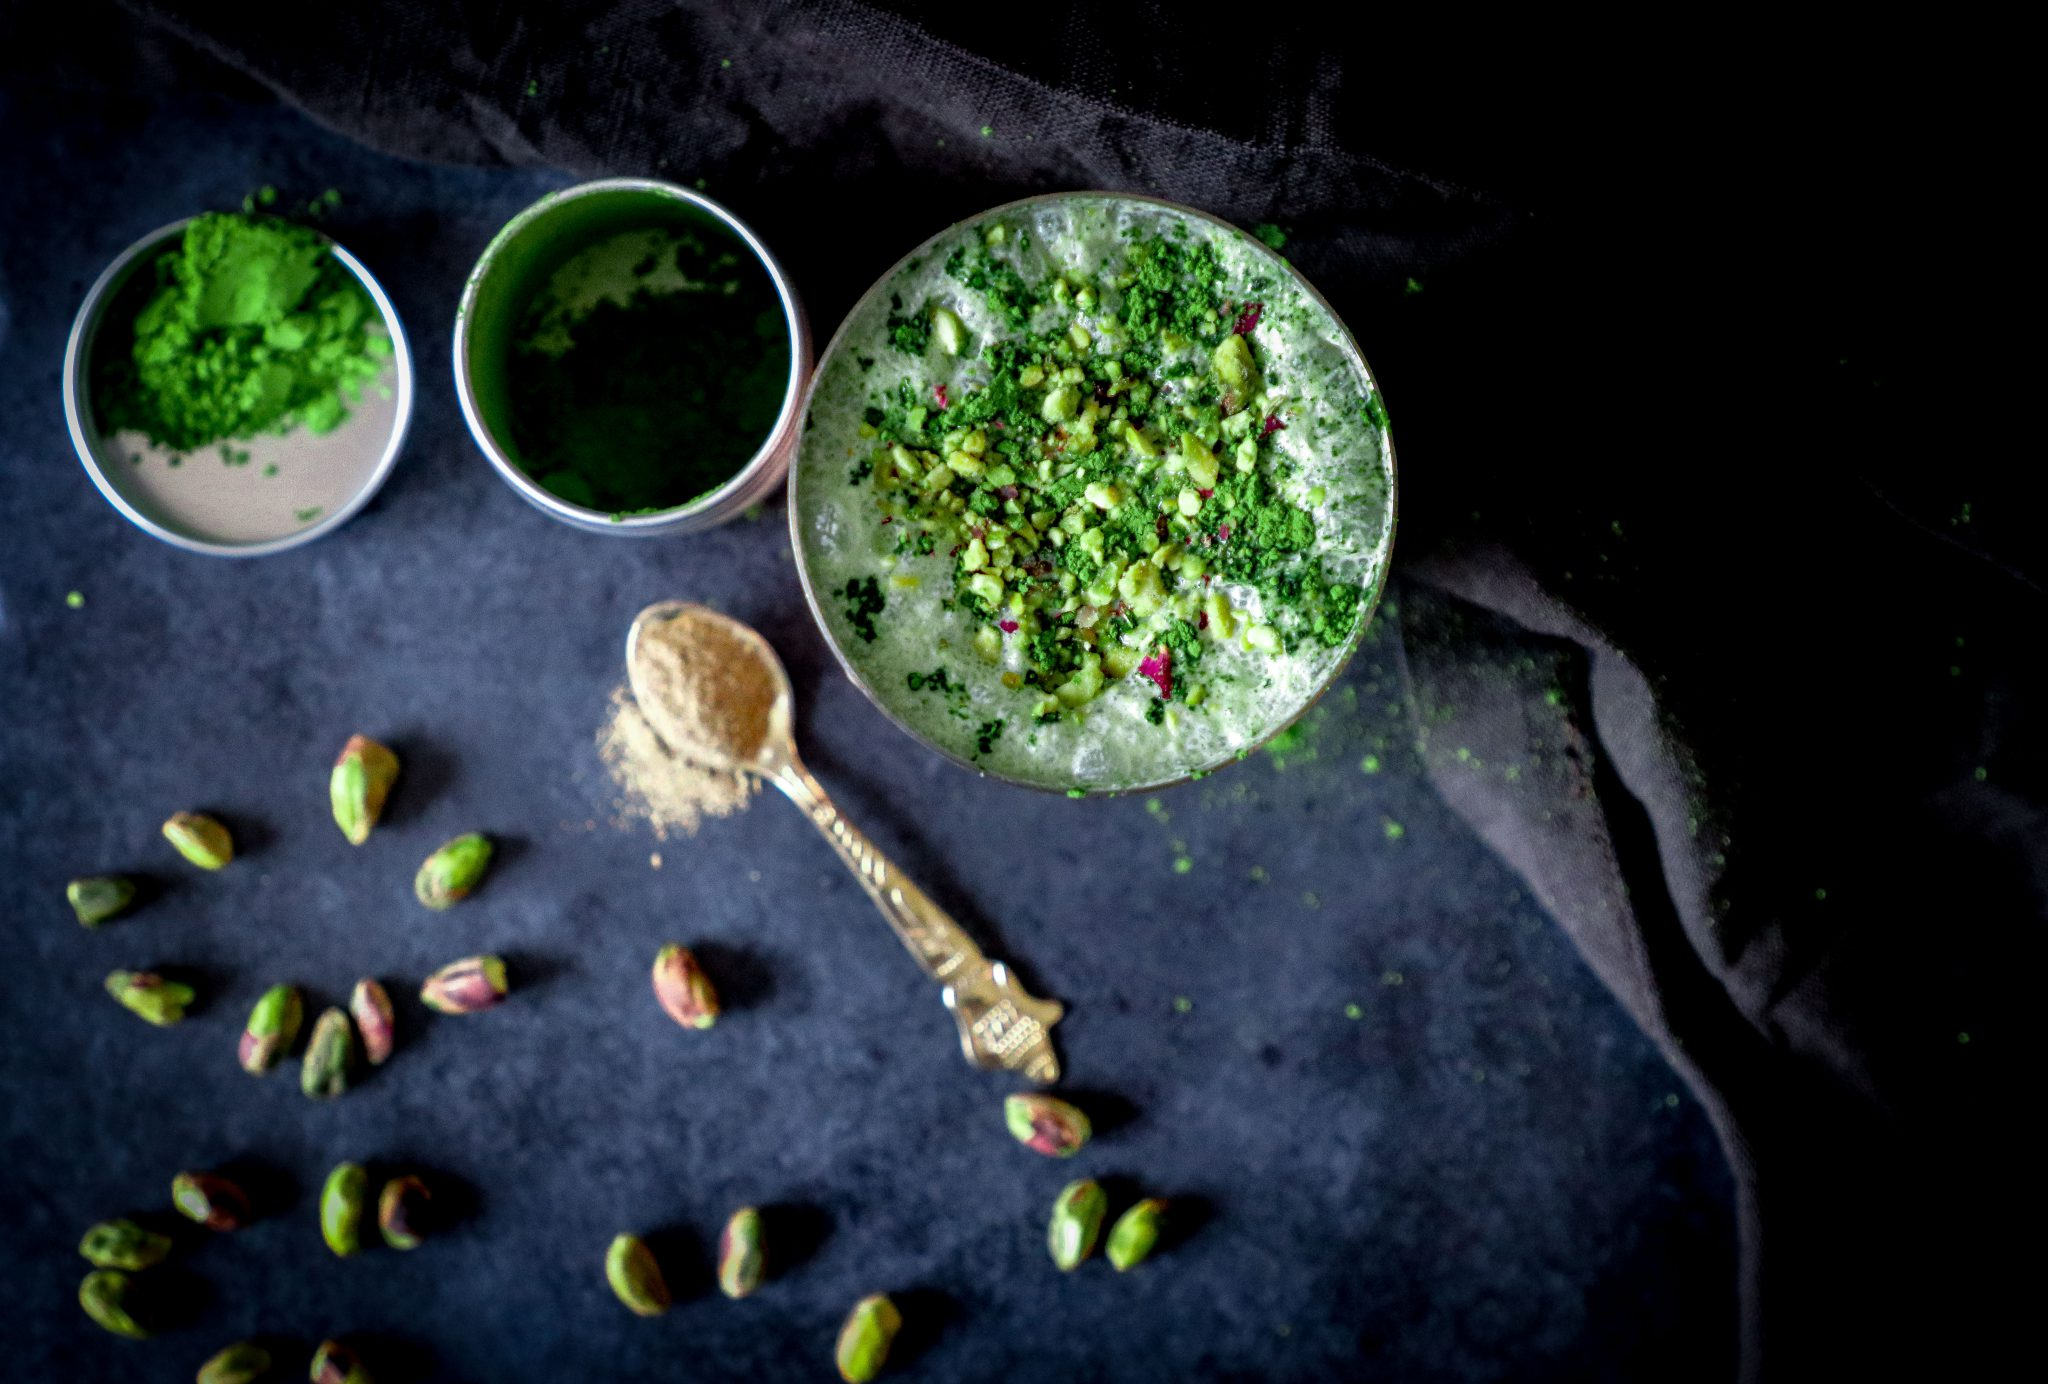 Summers are knocking- try this refreshing and healthy mix of yoghurt, milk, pistachios and matcha.